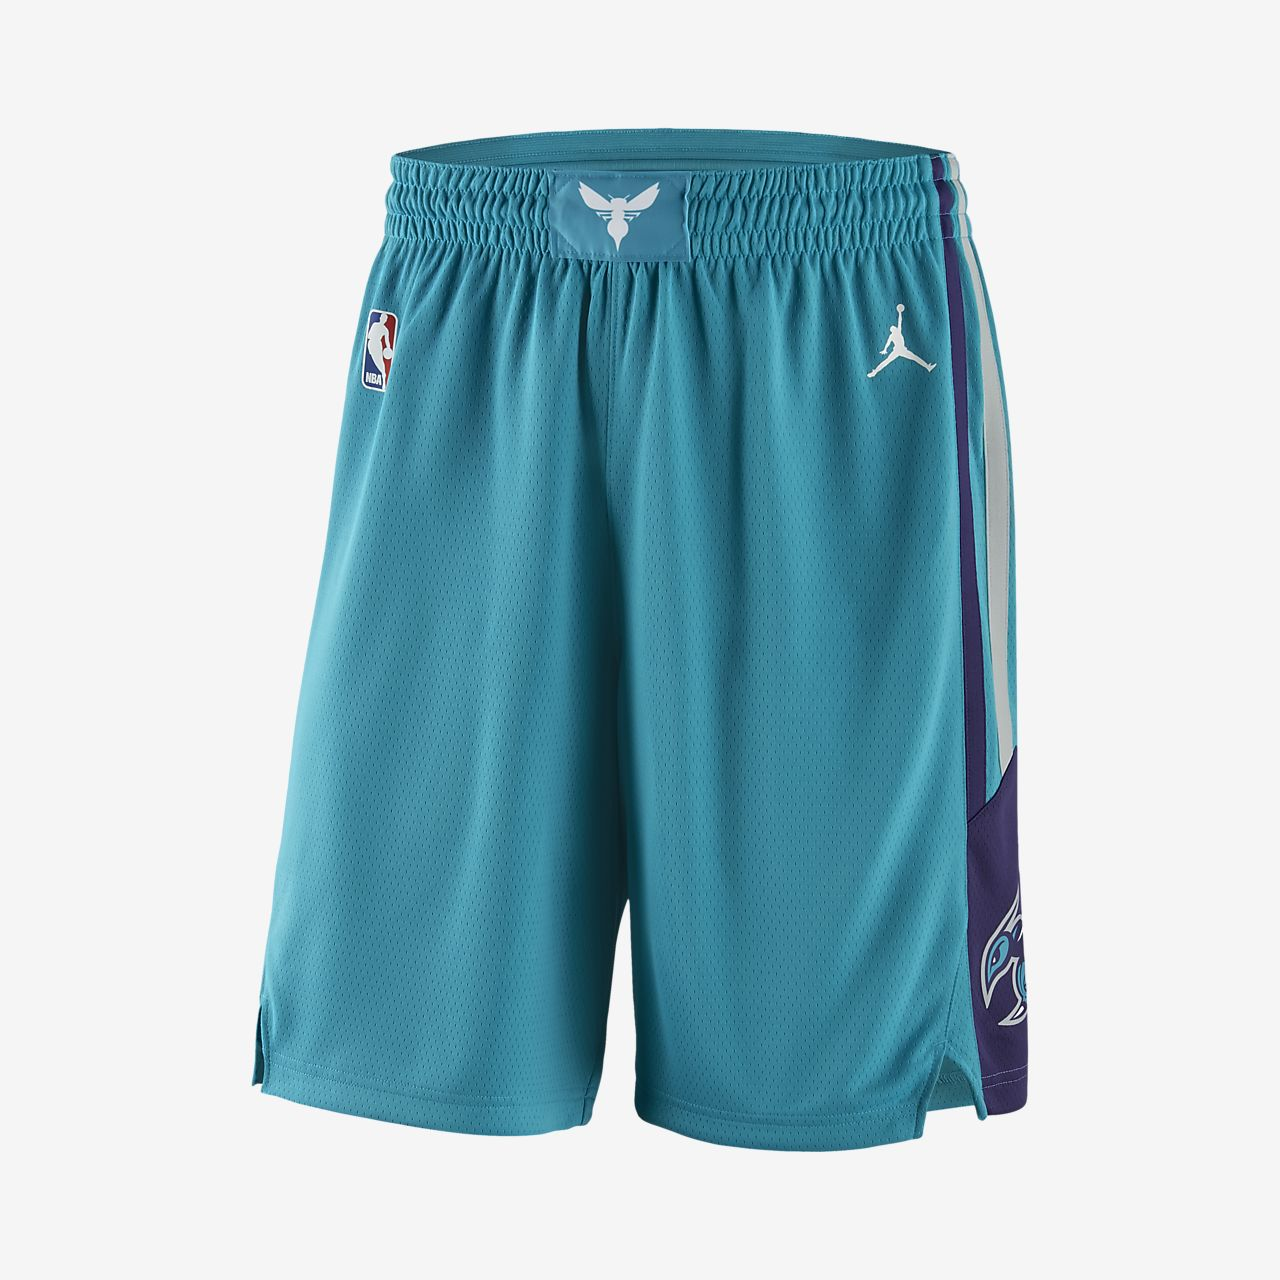 Charlotte Hornets Jordan Icon Edition Swingman NBA-Shorts für Herren